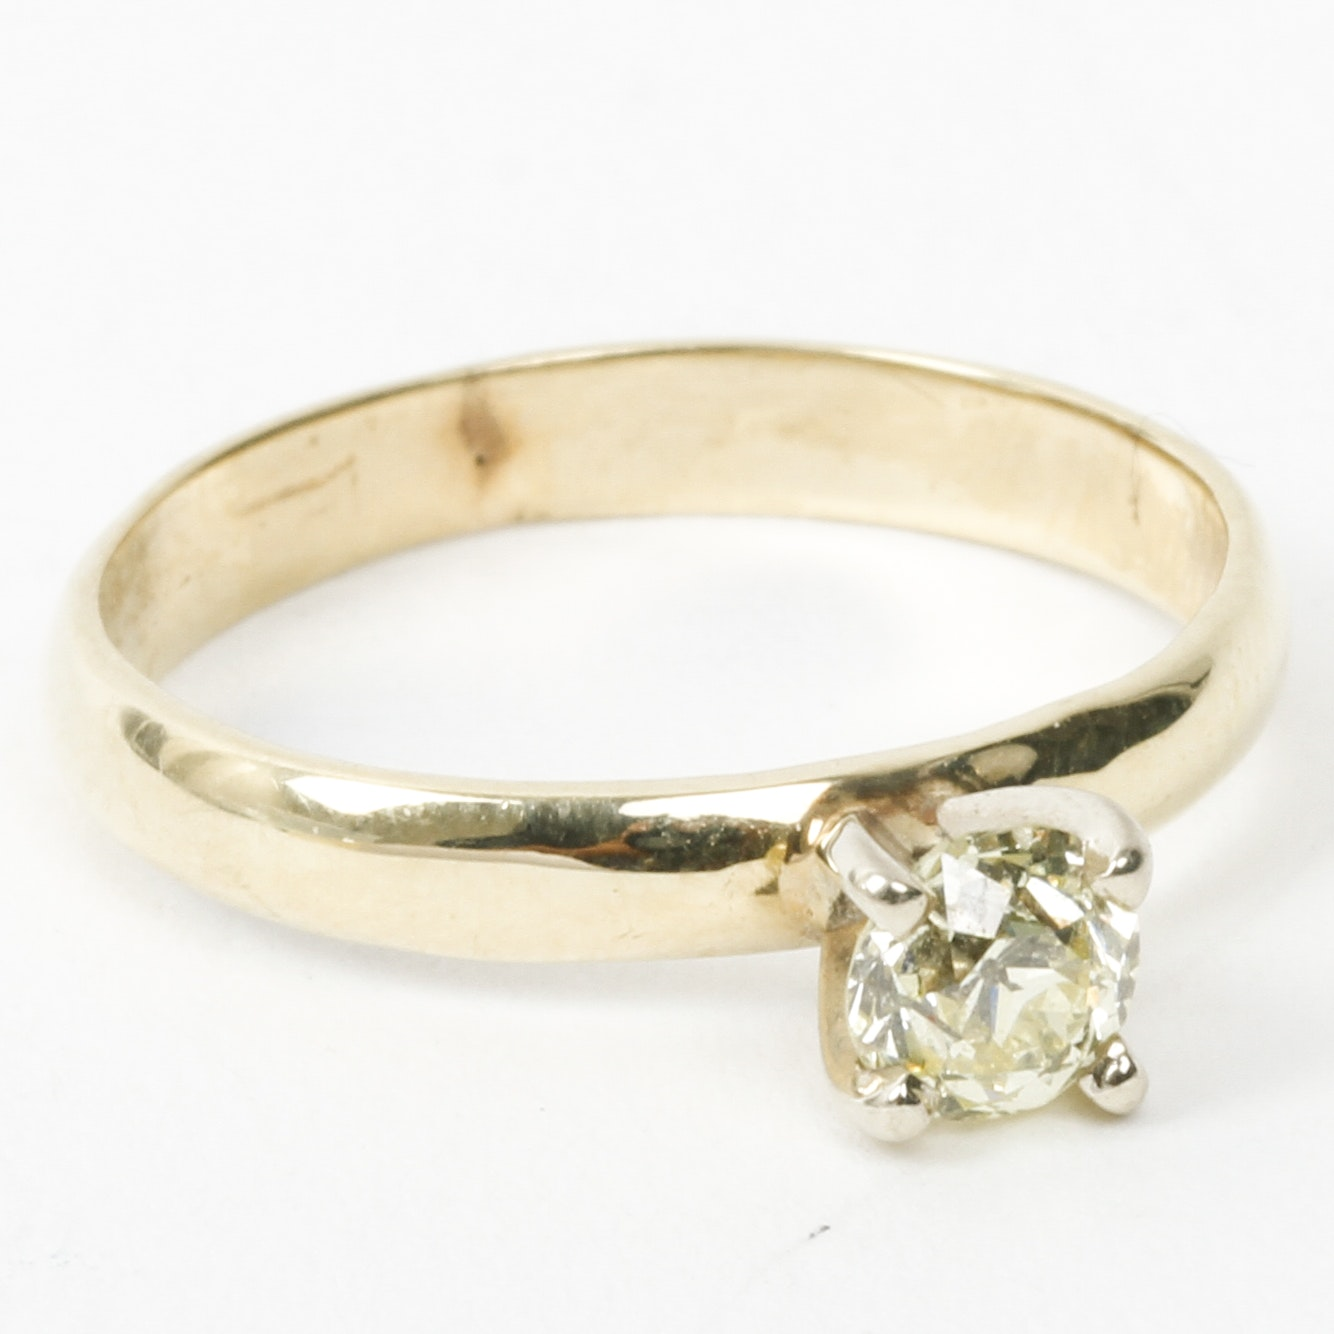 Vintage 14K Yellow Gold and Old European Cut Diamond Solitaire Ring